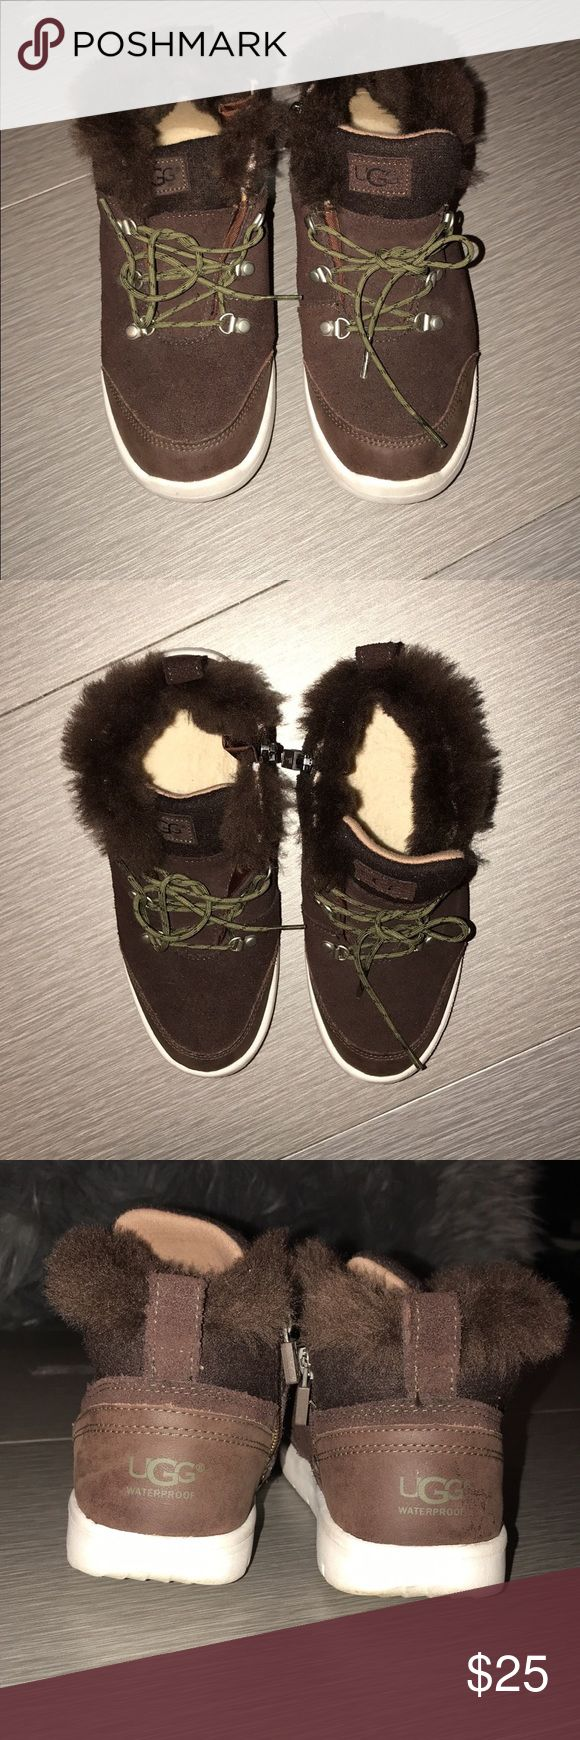 Kid UGG sneakers Kid UGG great condition worn once size 3 more like a size 21/2 that's y I'm selling them really cute UGG sneakers UGG Shoes Sneakers